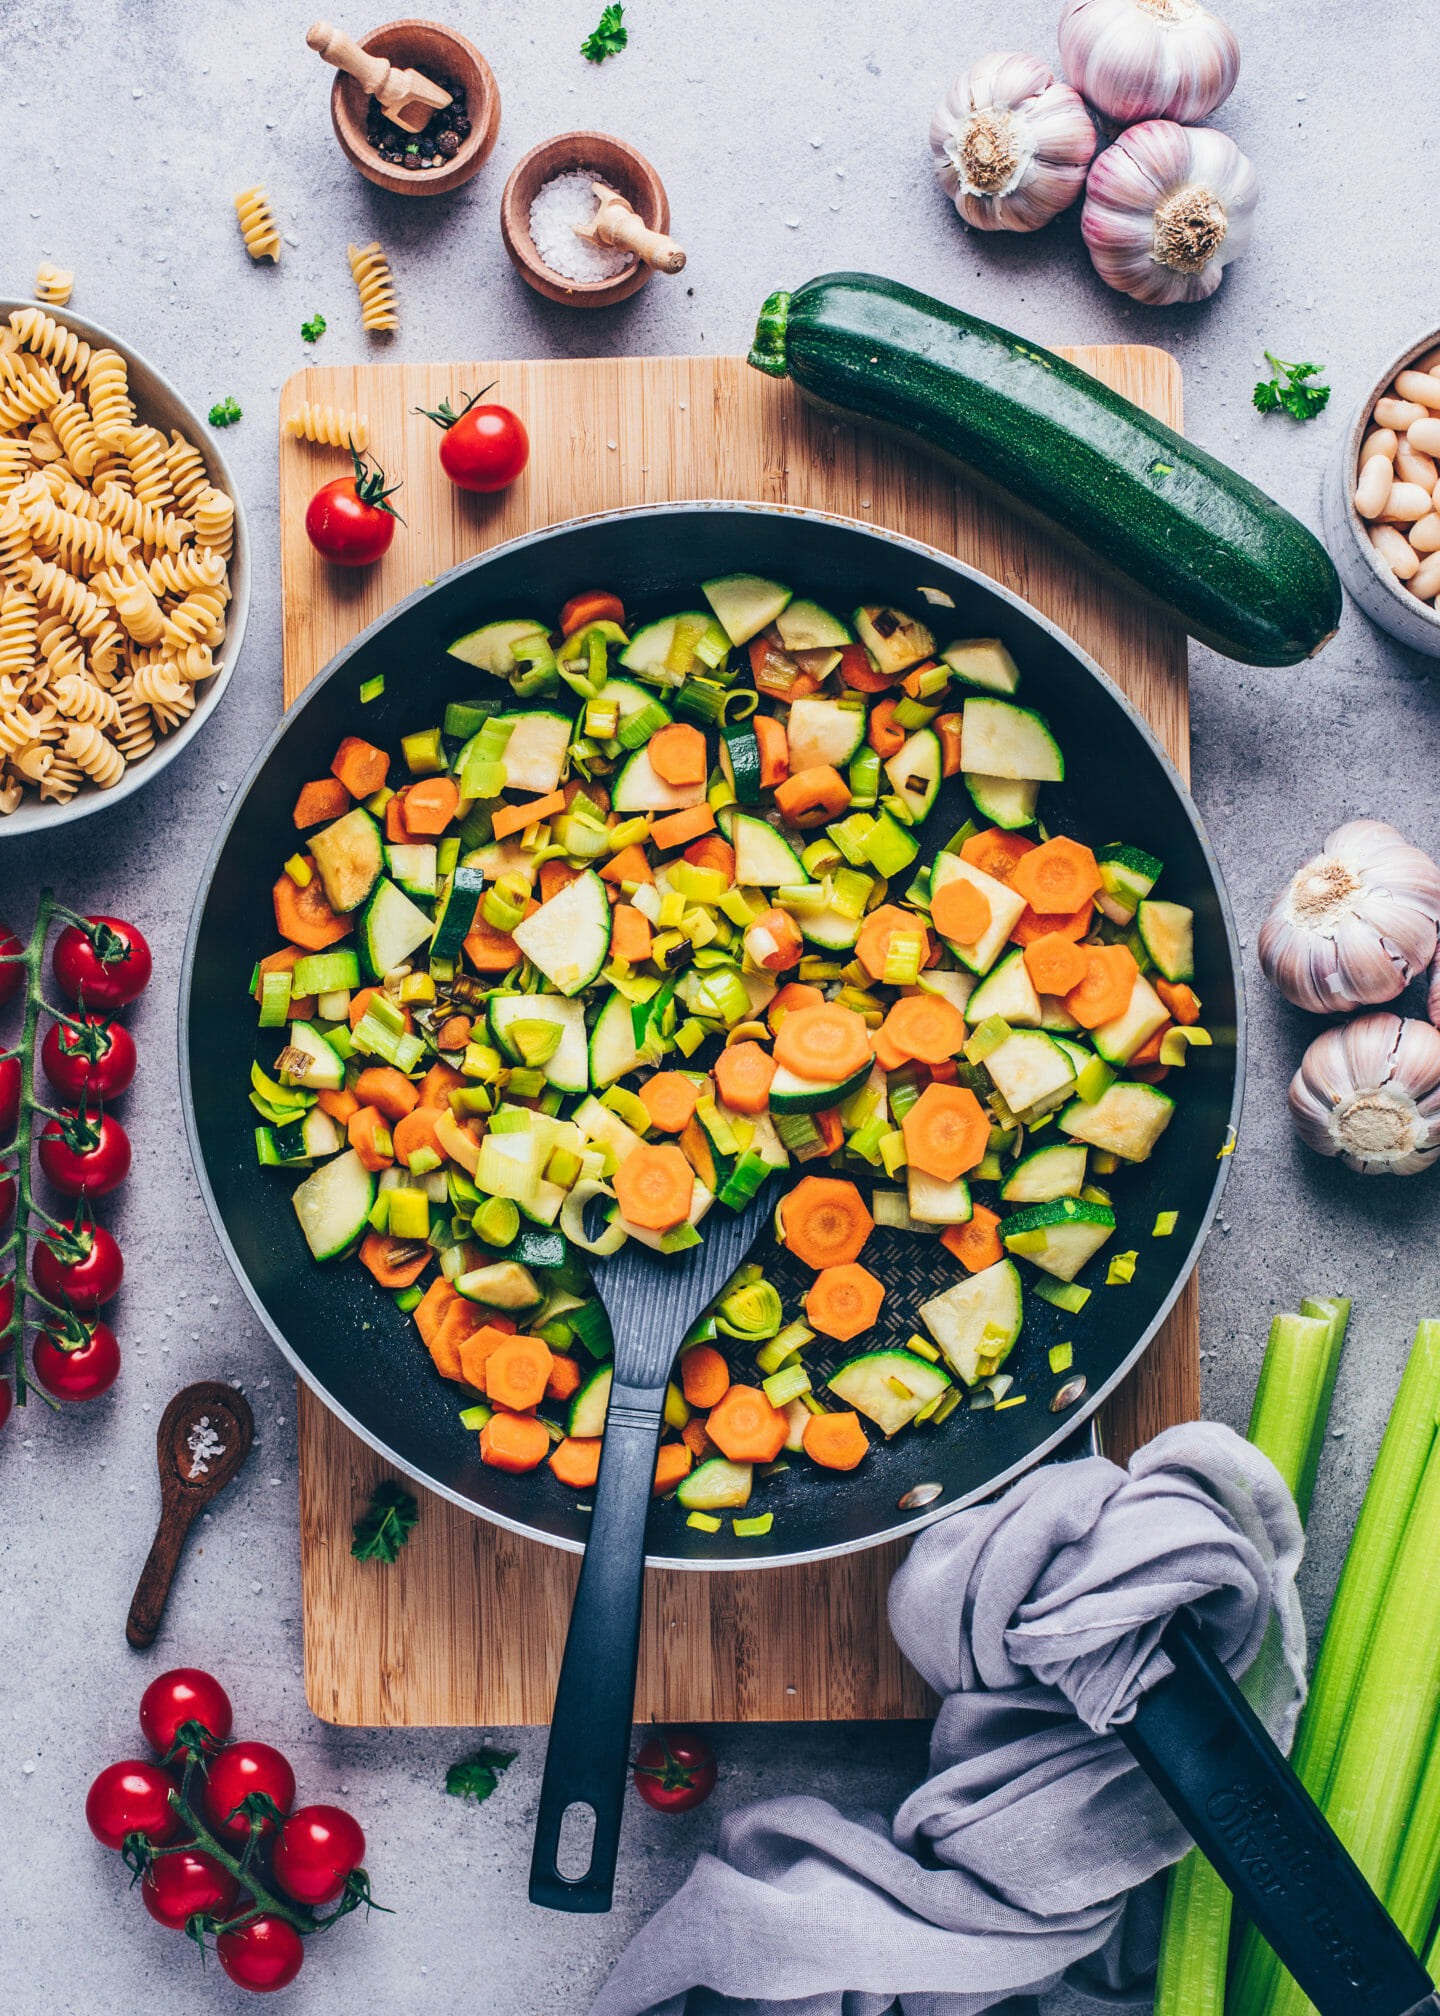 Sautéed vegetables in a pan for minestrone soup